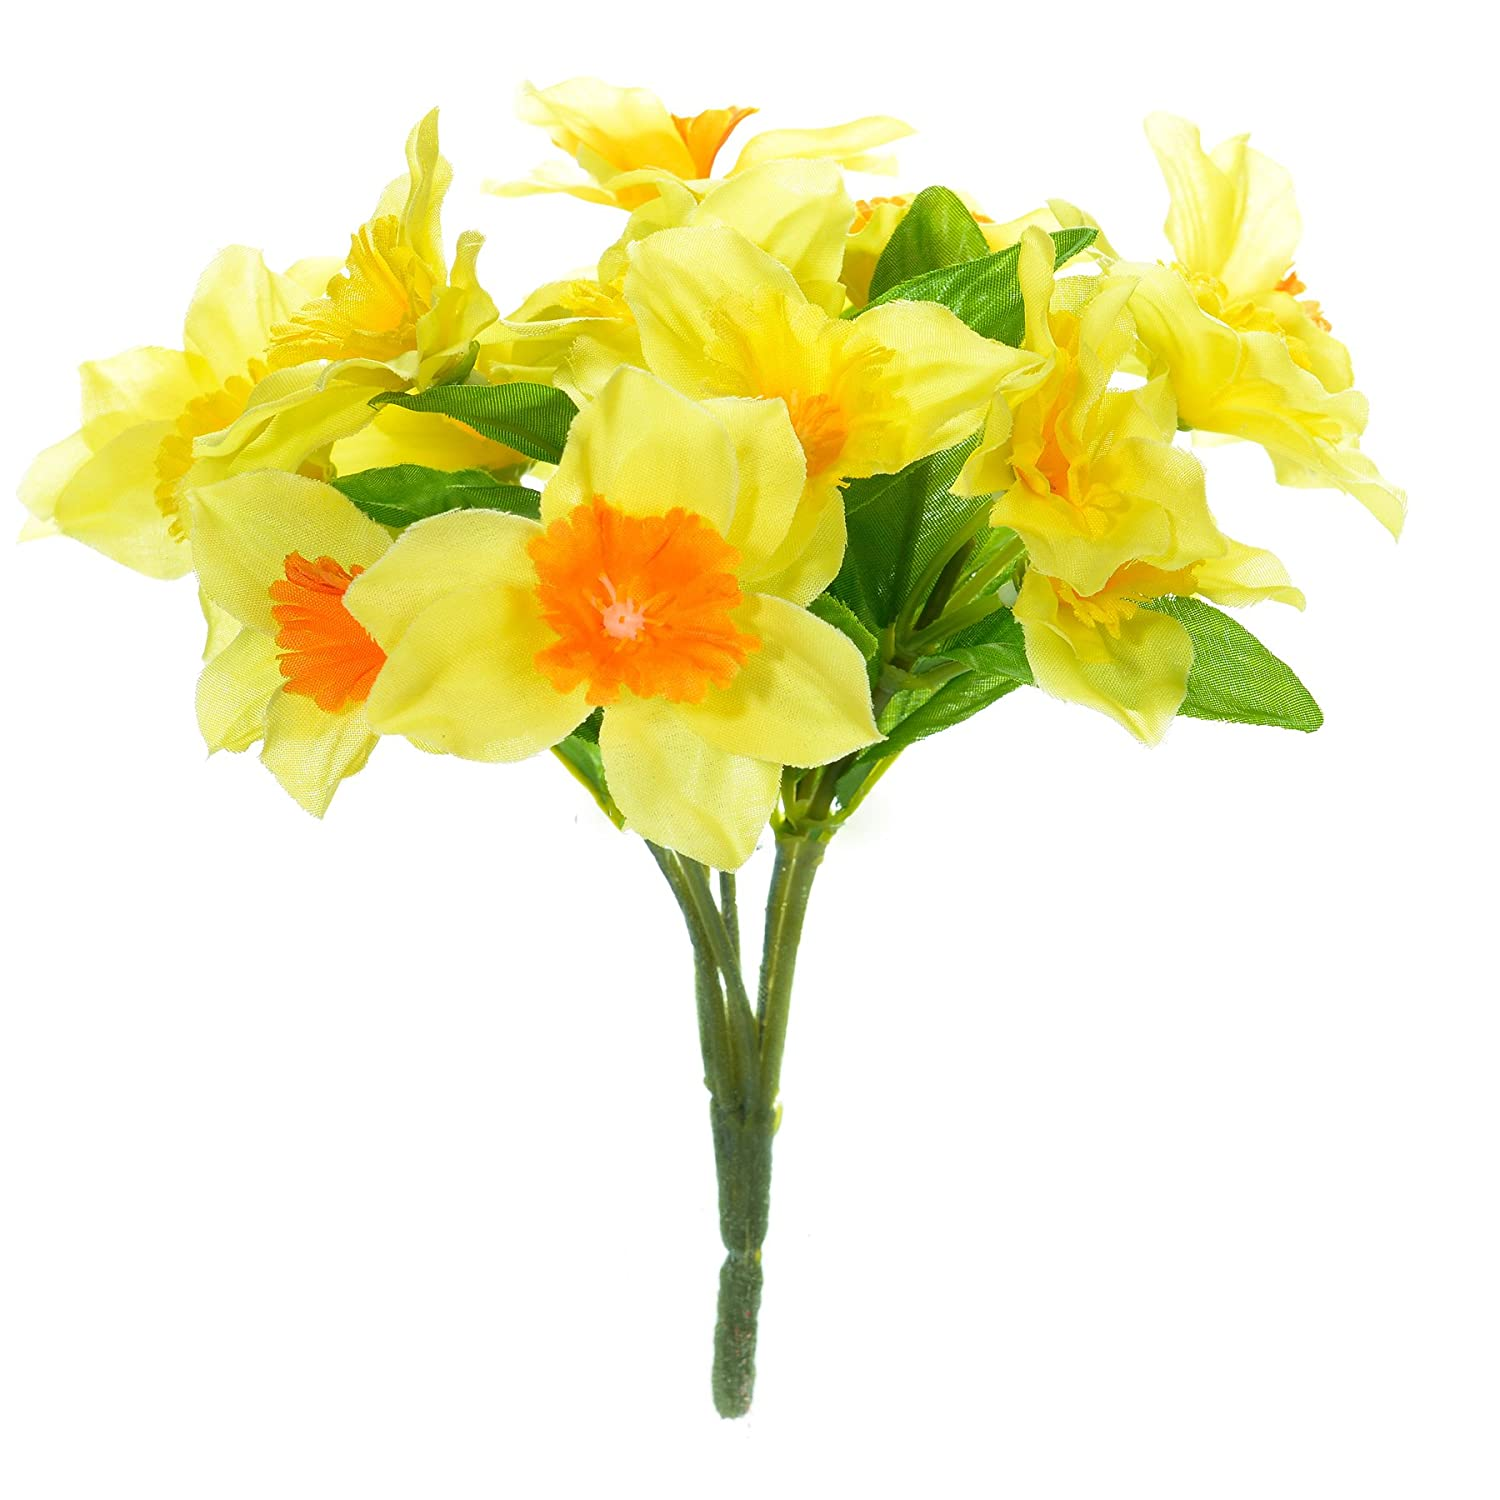 Floristrywarehouse Artificial Daffodils Bunch 14 Stems Of Bright